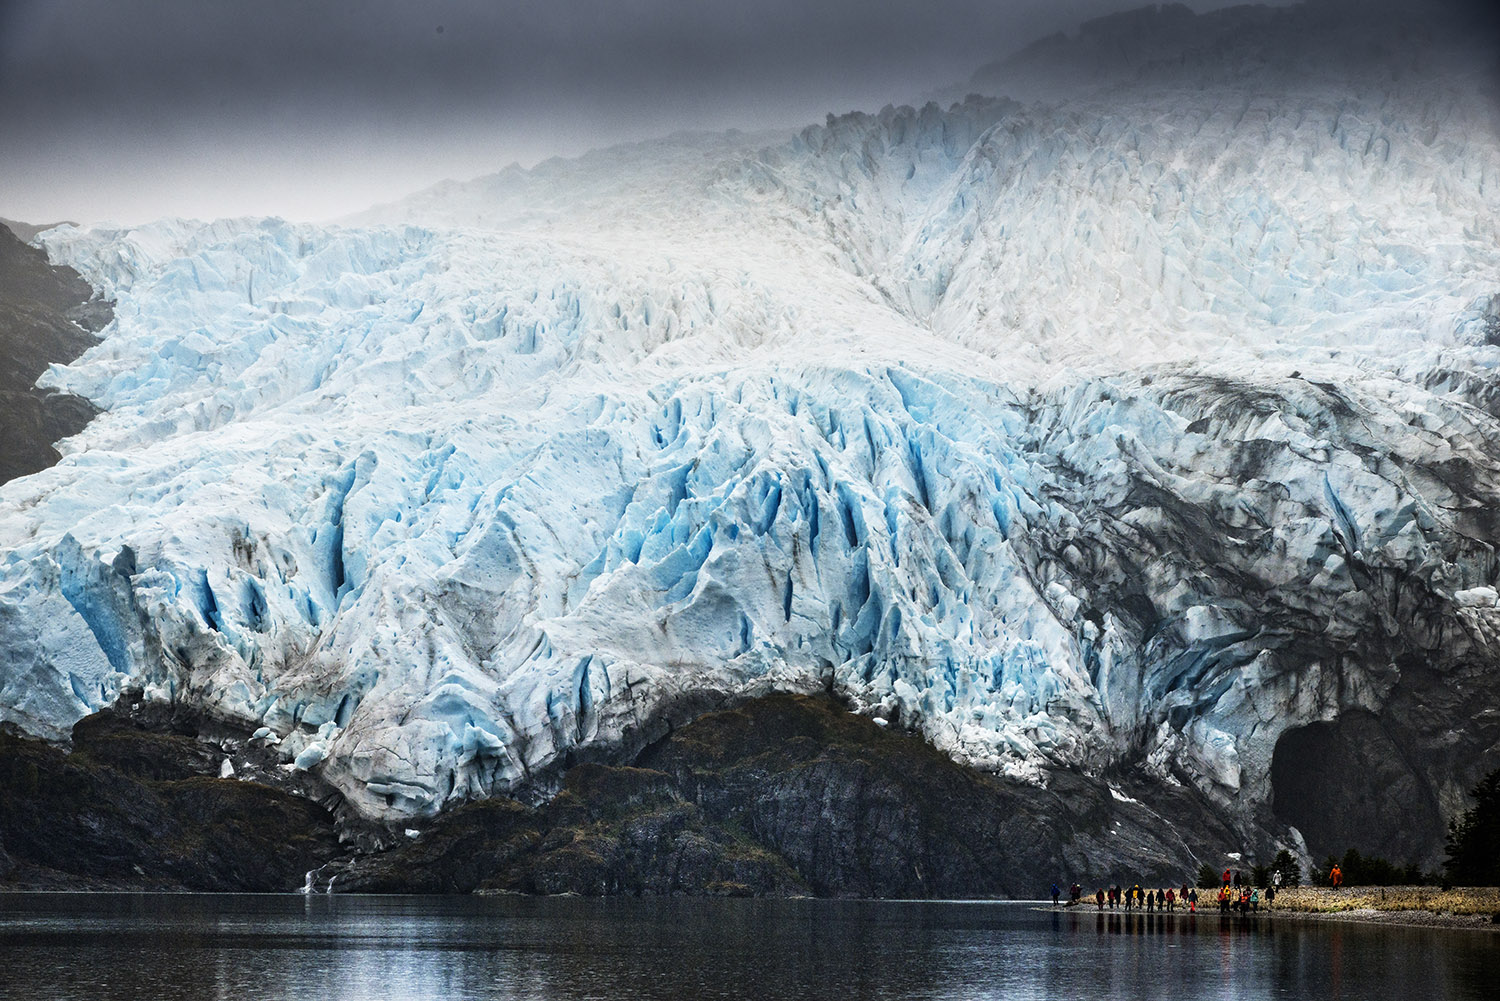 Story: Patagonia - Going South